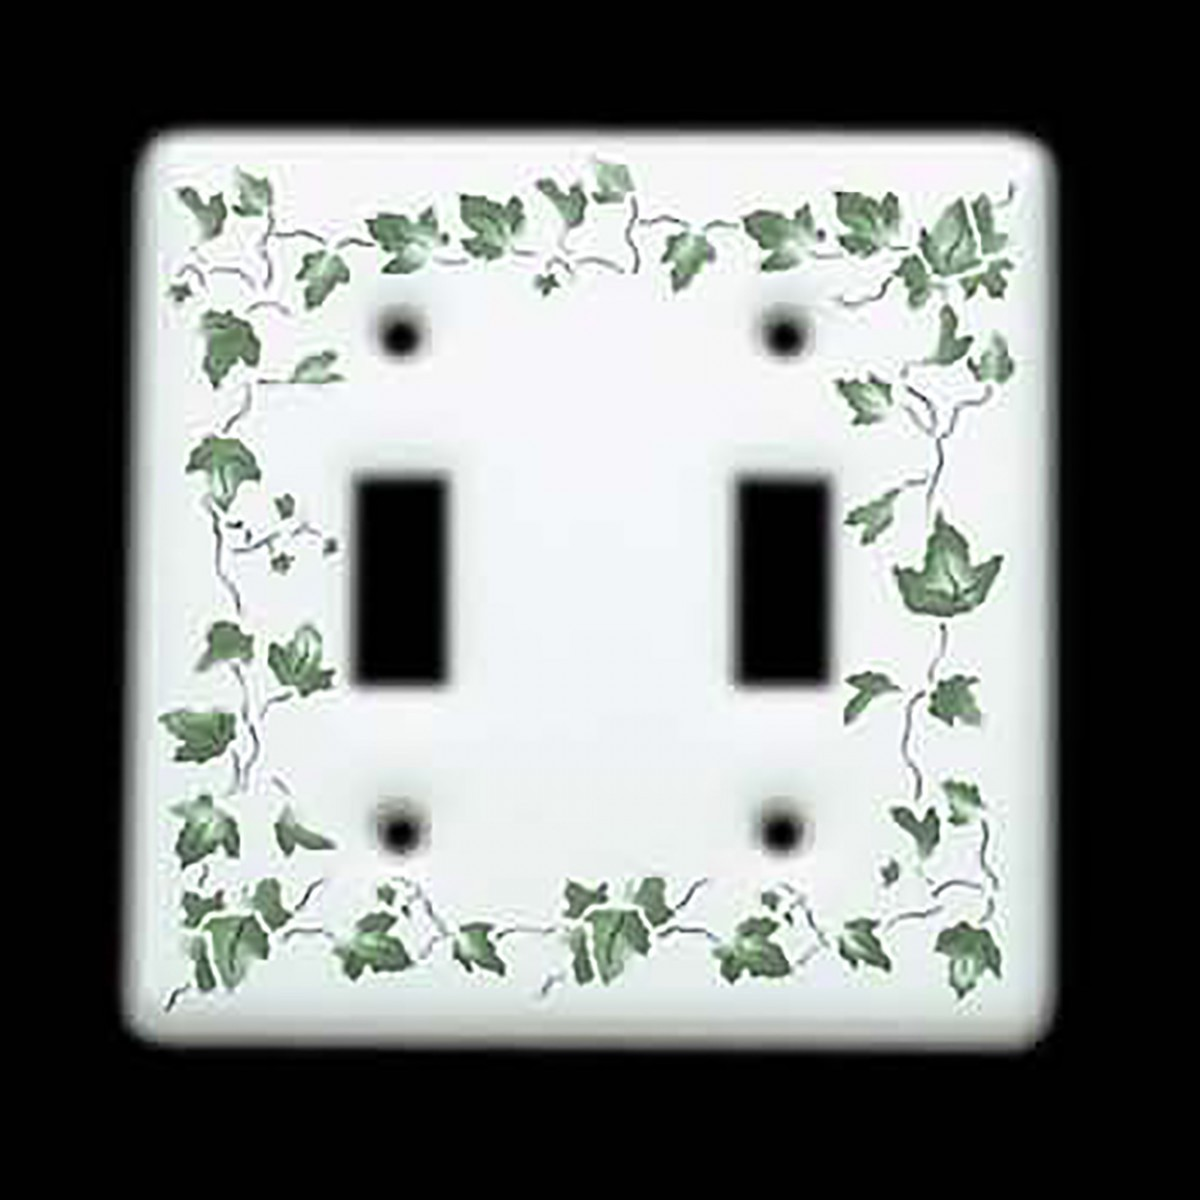 2 Vintage Light Switch Plate White Porcelain Ivy Double Toggle Switch Plate Wall Plates light switch plate